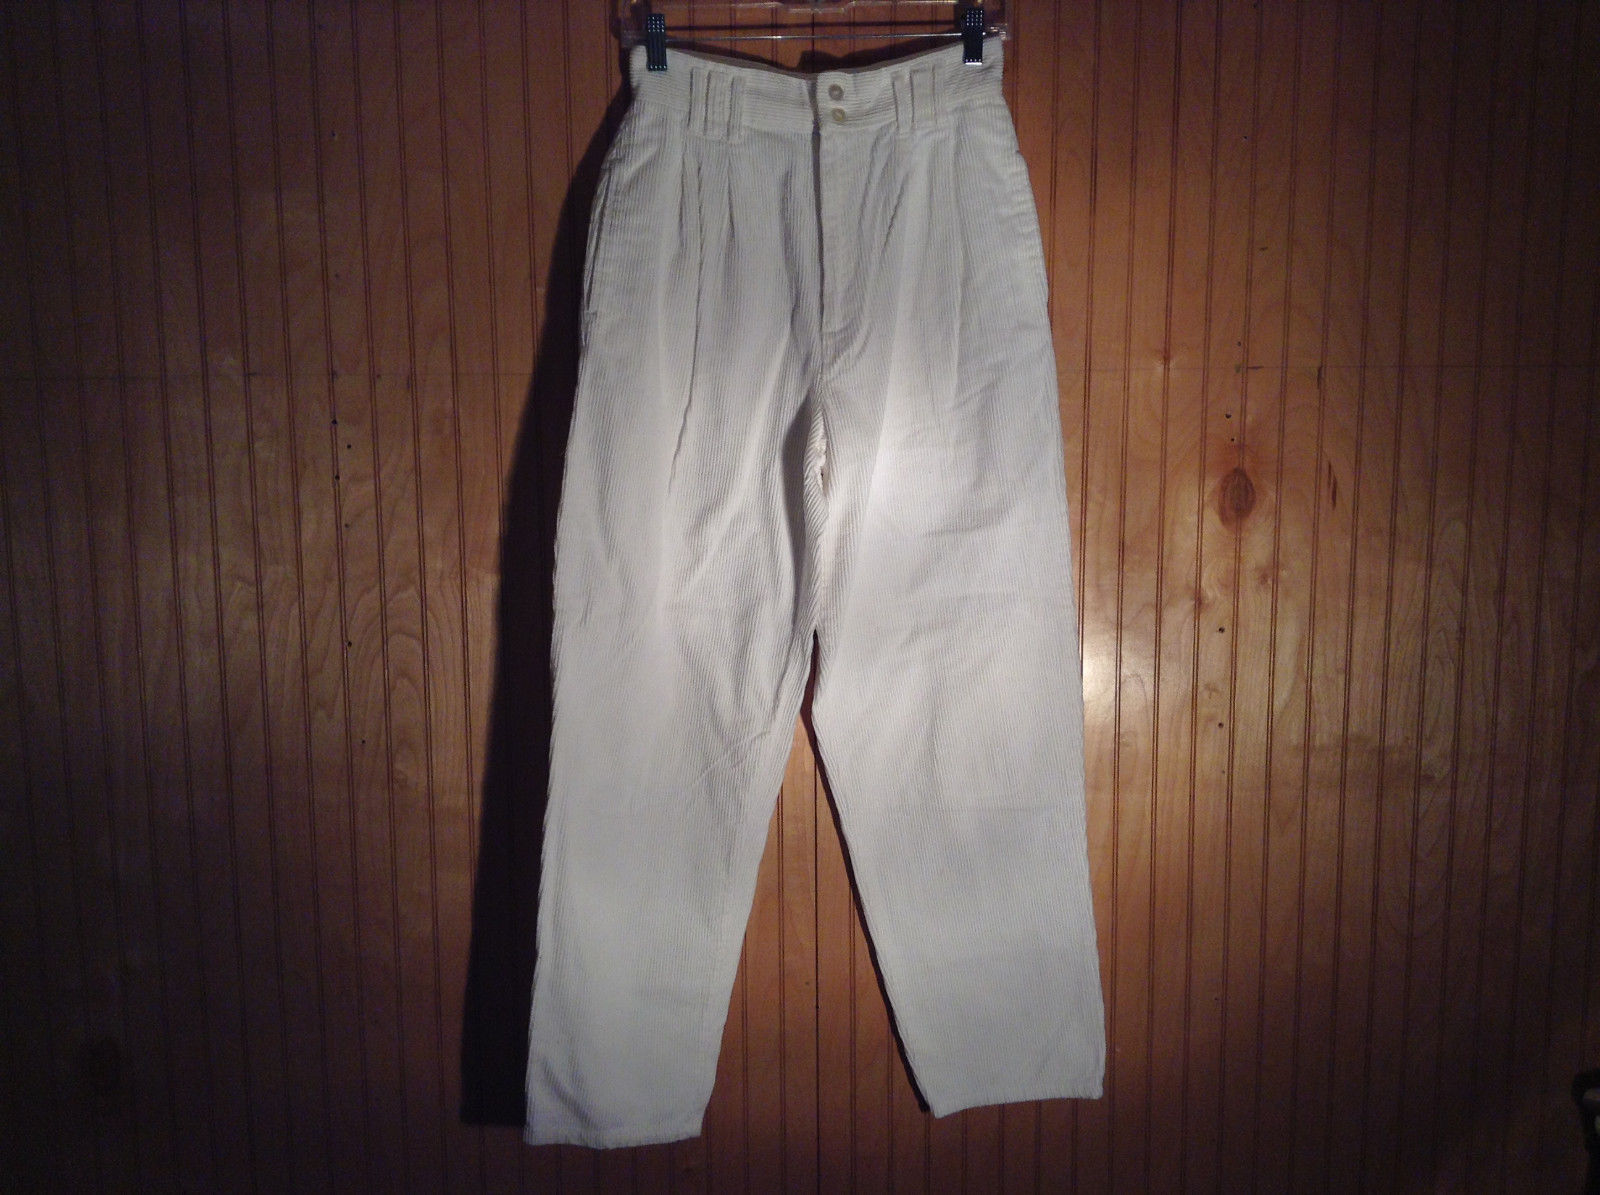 B Moss Clothing Company 100 Percent Cotton White Corduroy Pants Size 9 to 10